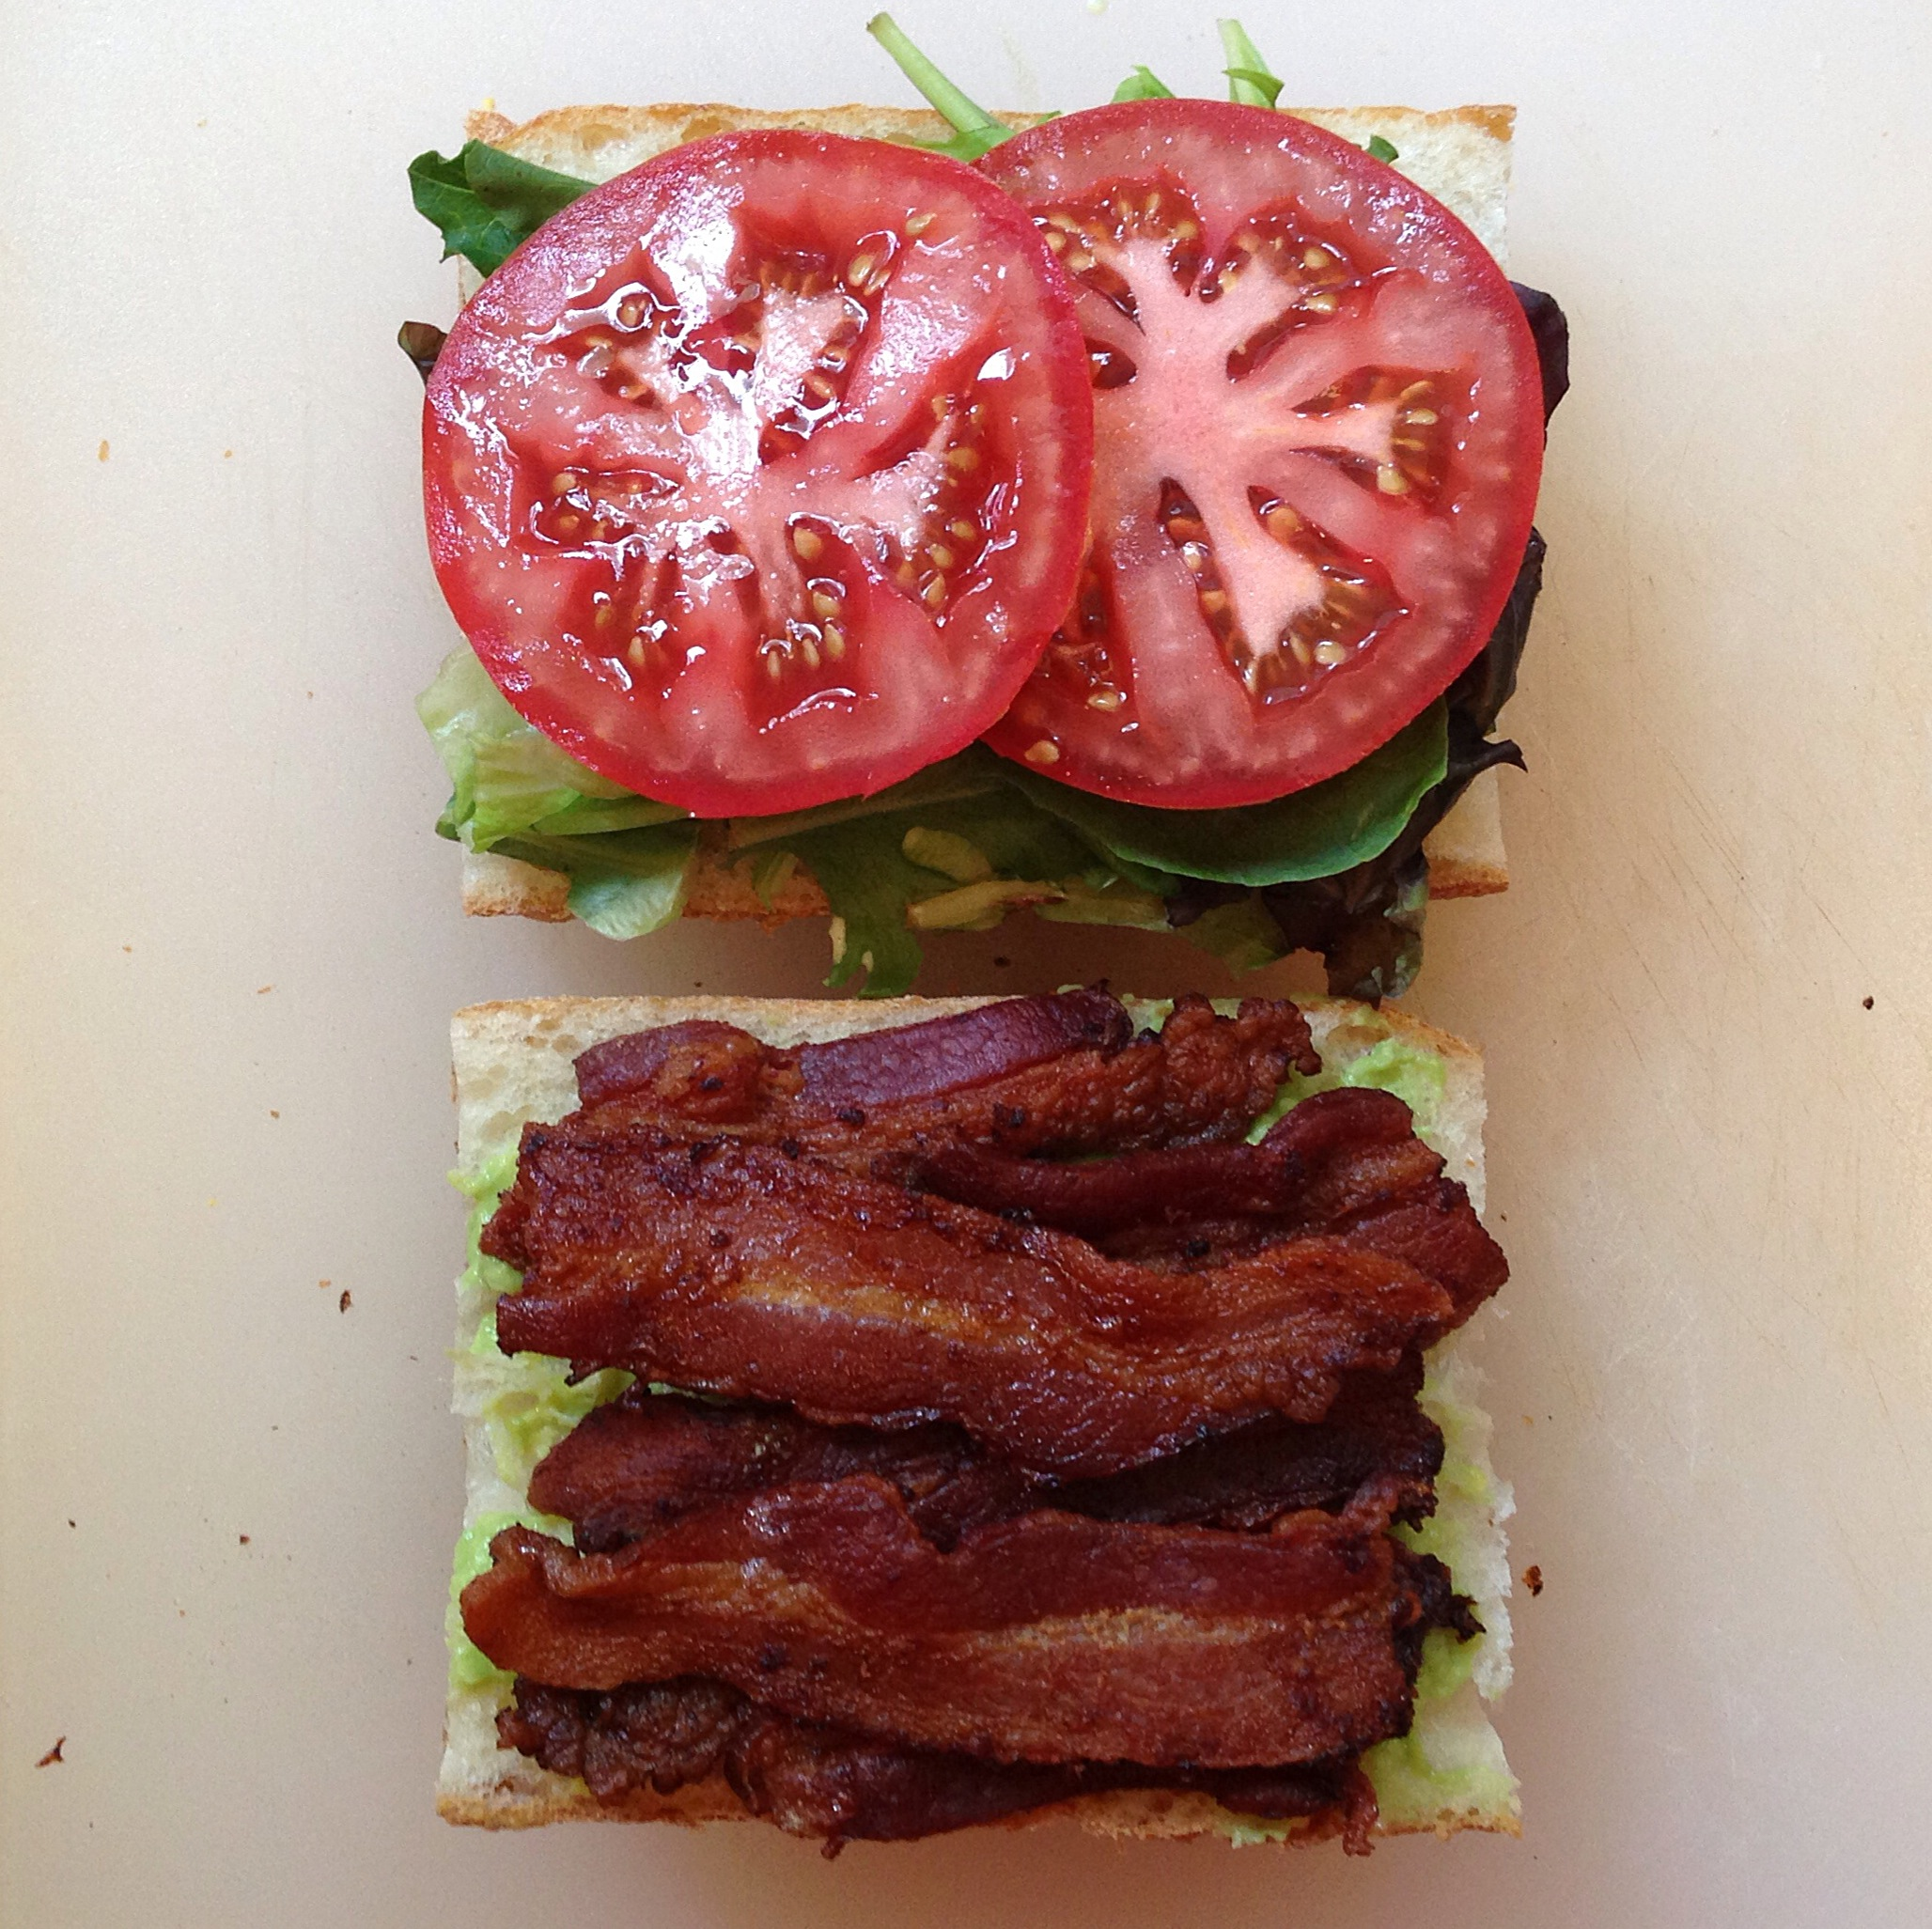 File:Making a BLT sandwich with avocado and basil mayonnaise.jpg ...